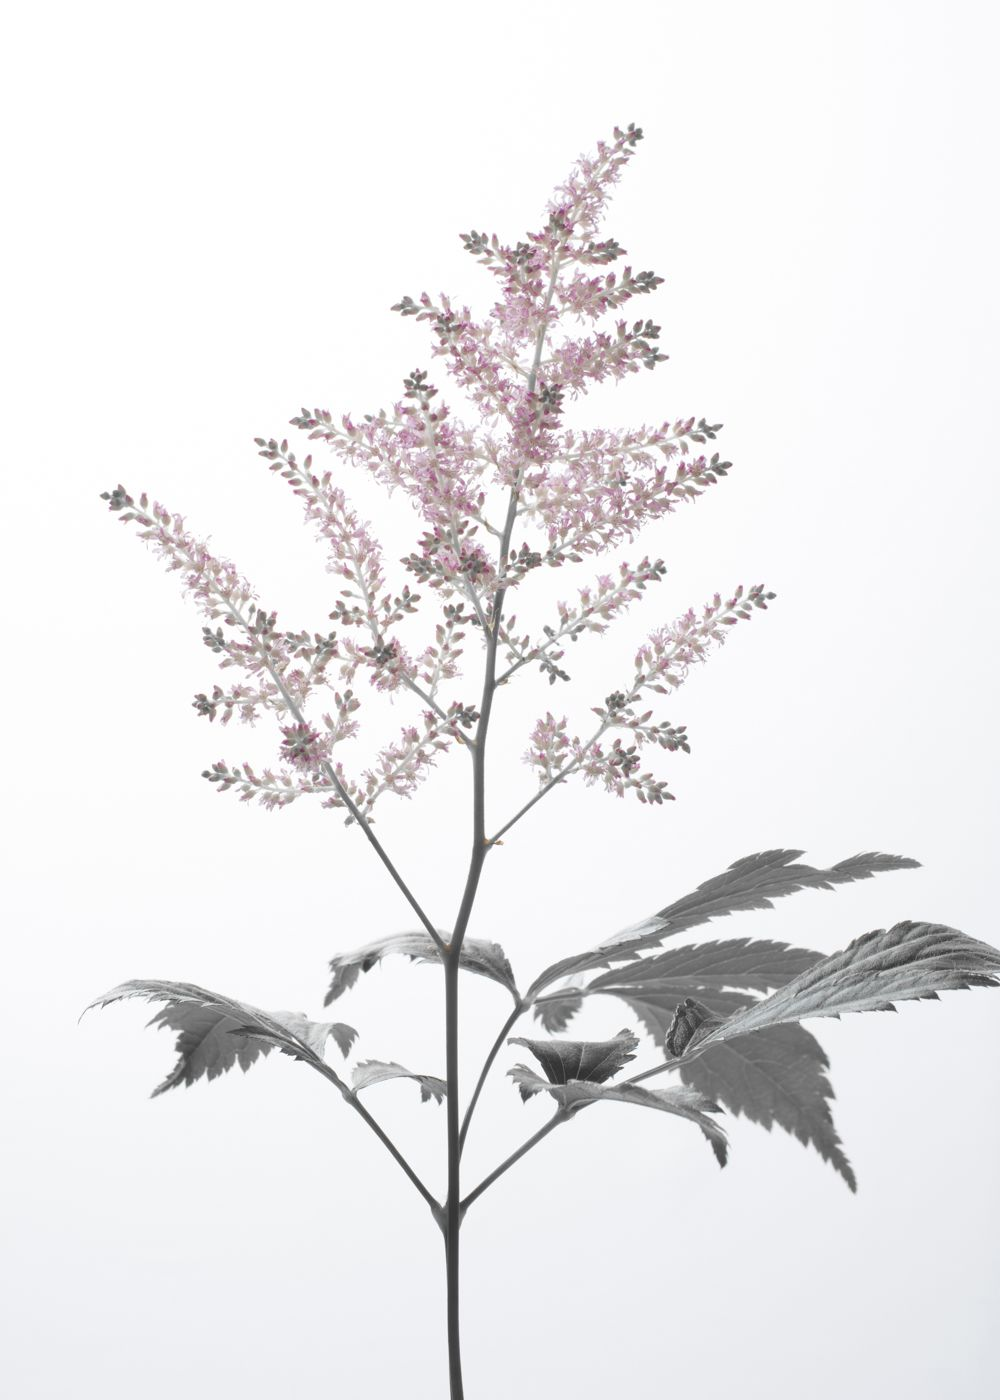 Astilbe Astilbe Flowers Photography Poster Prints